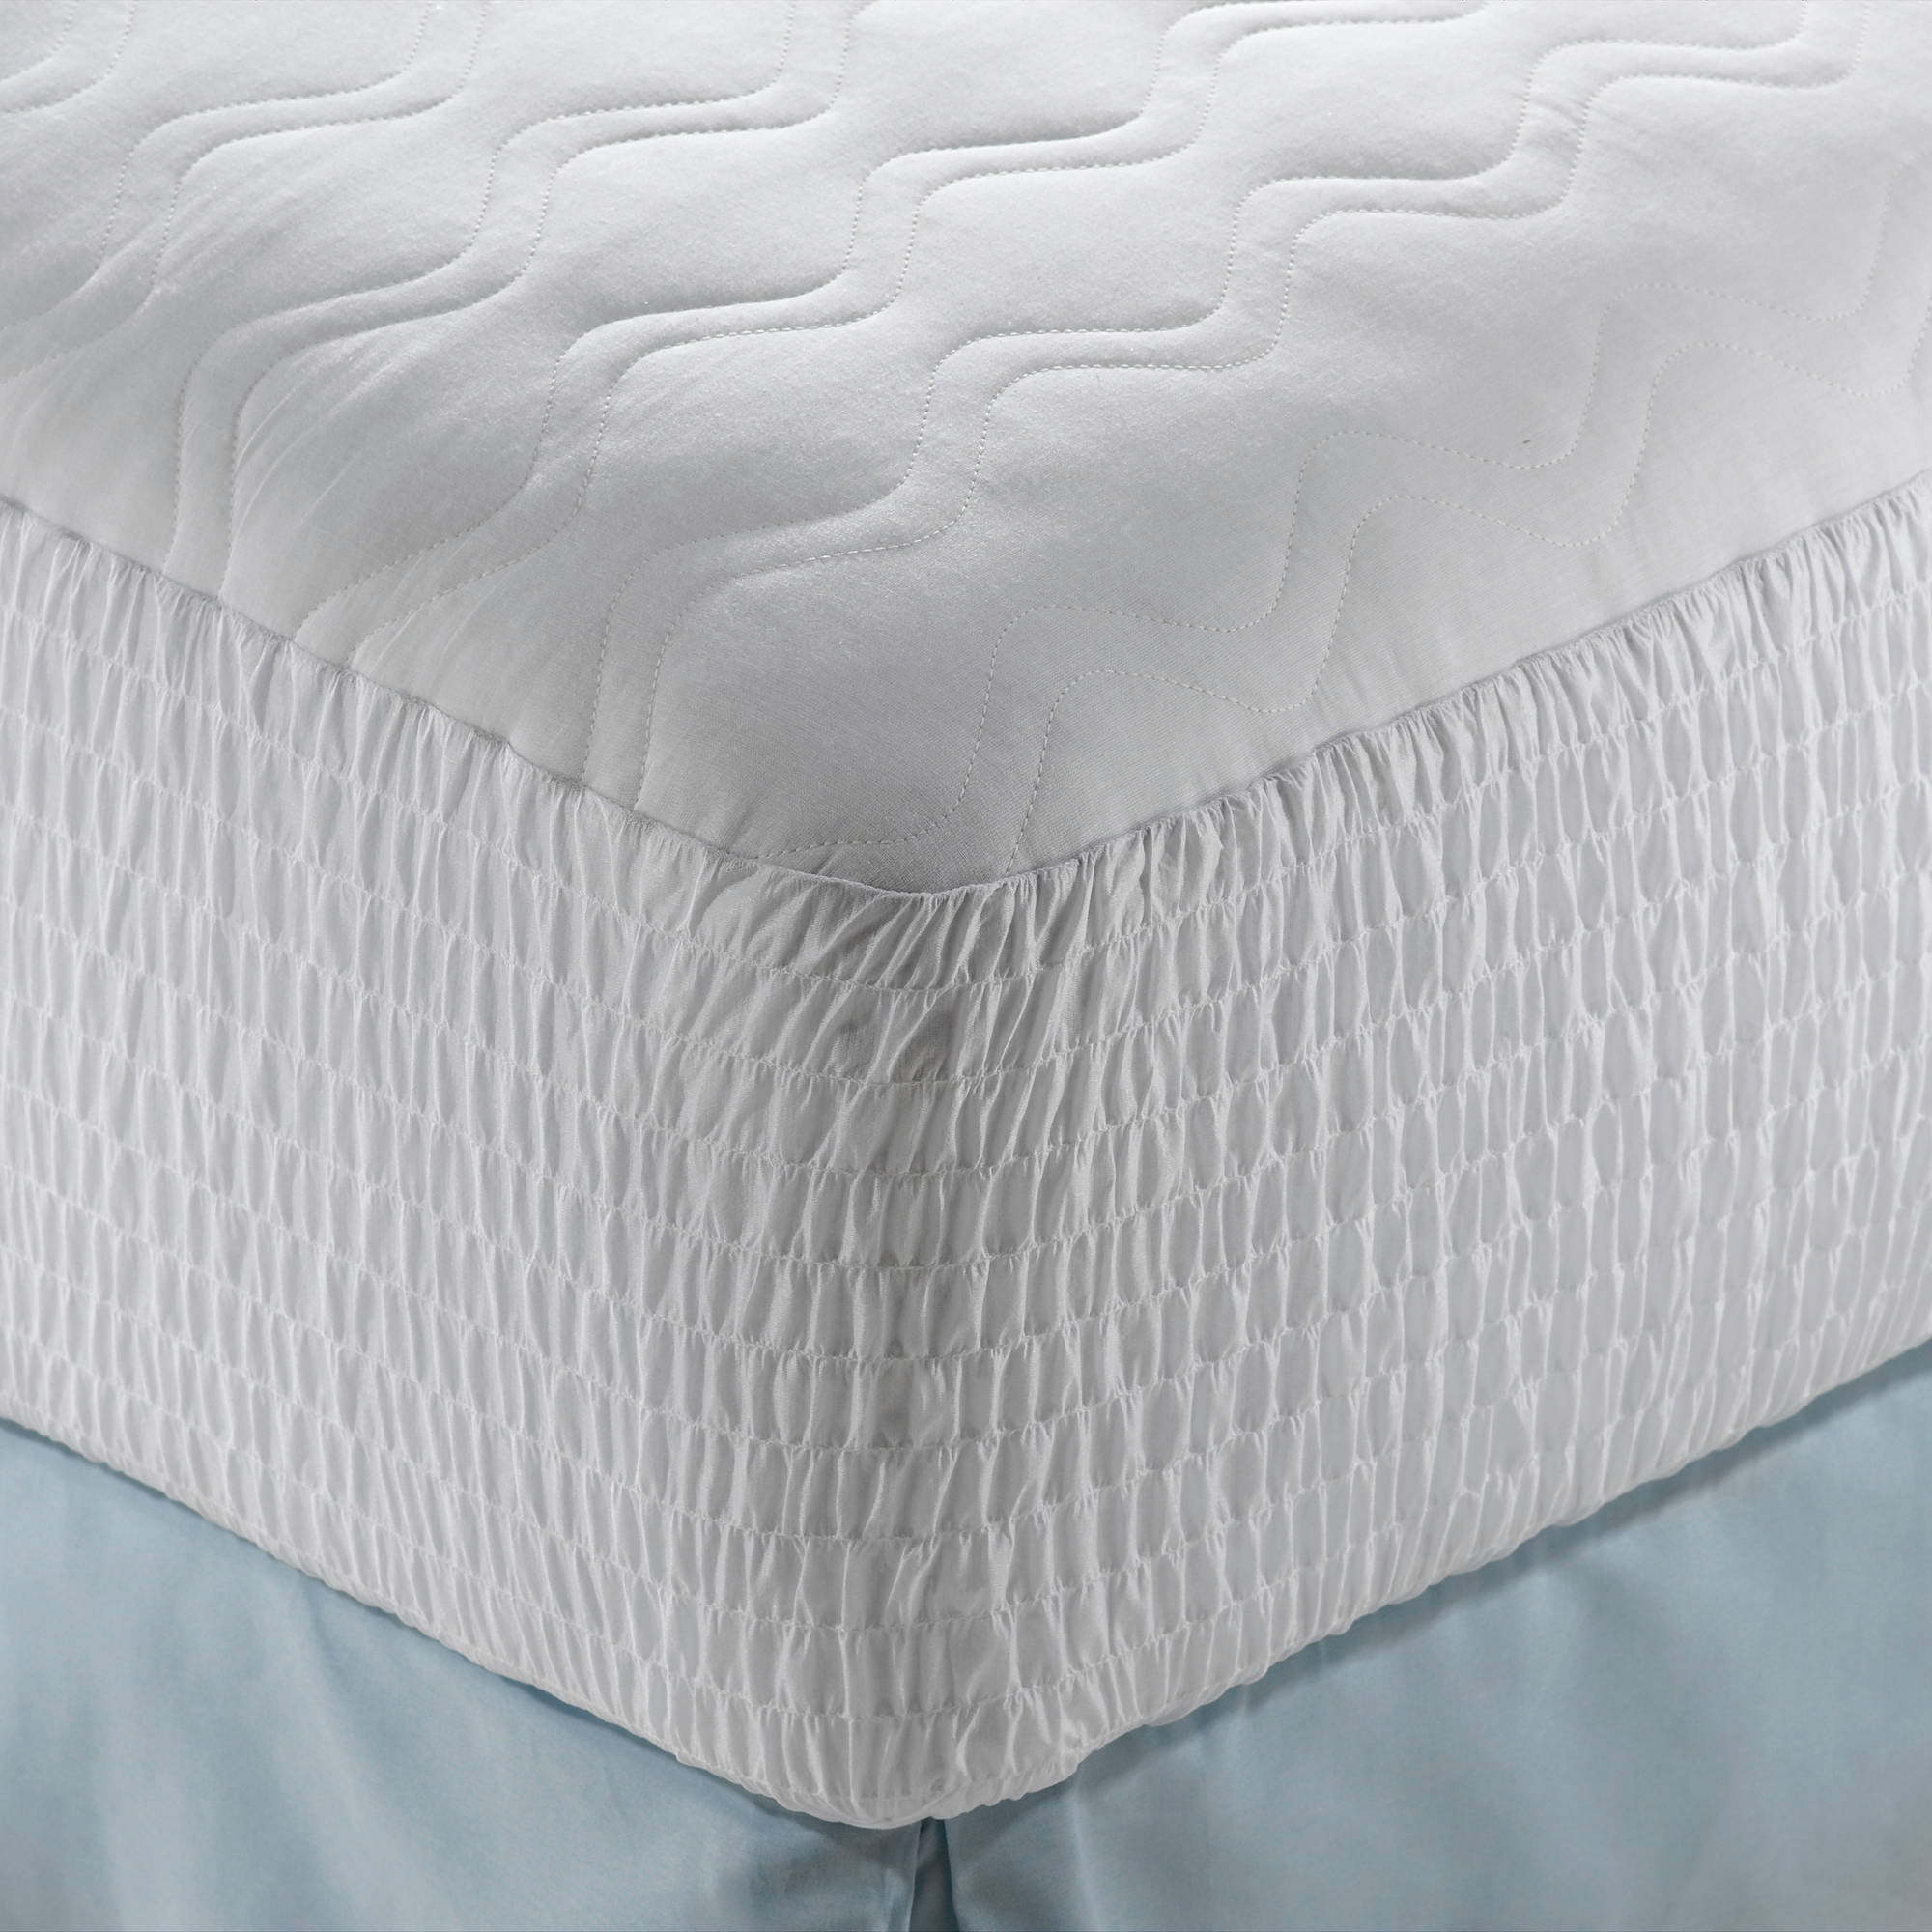 country canada mattress simmons davidson mattresses sleep top beautyrest topper pillow by silver